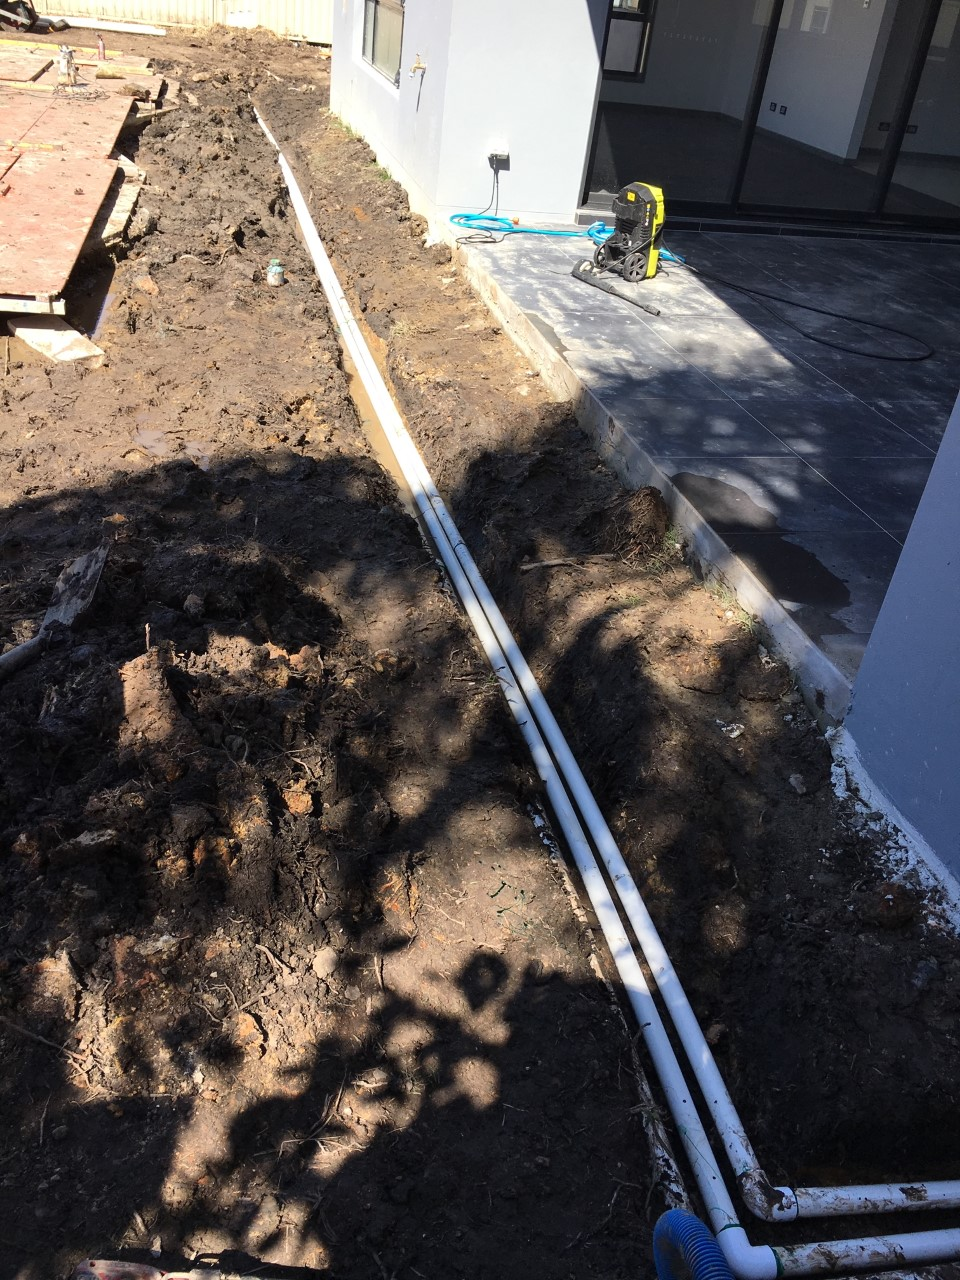 New Home Construction Landscaping. Install conduits below any future driveways or paths.